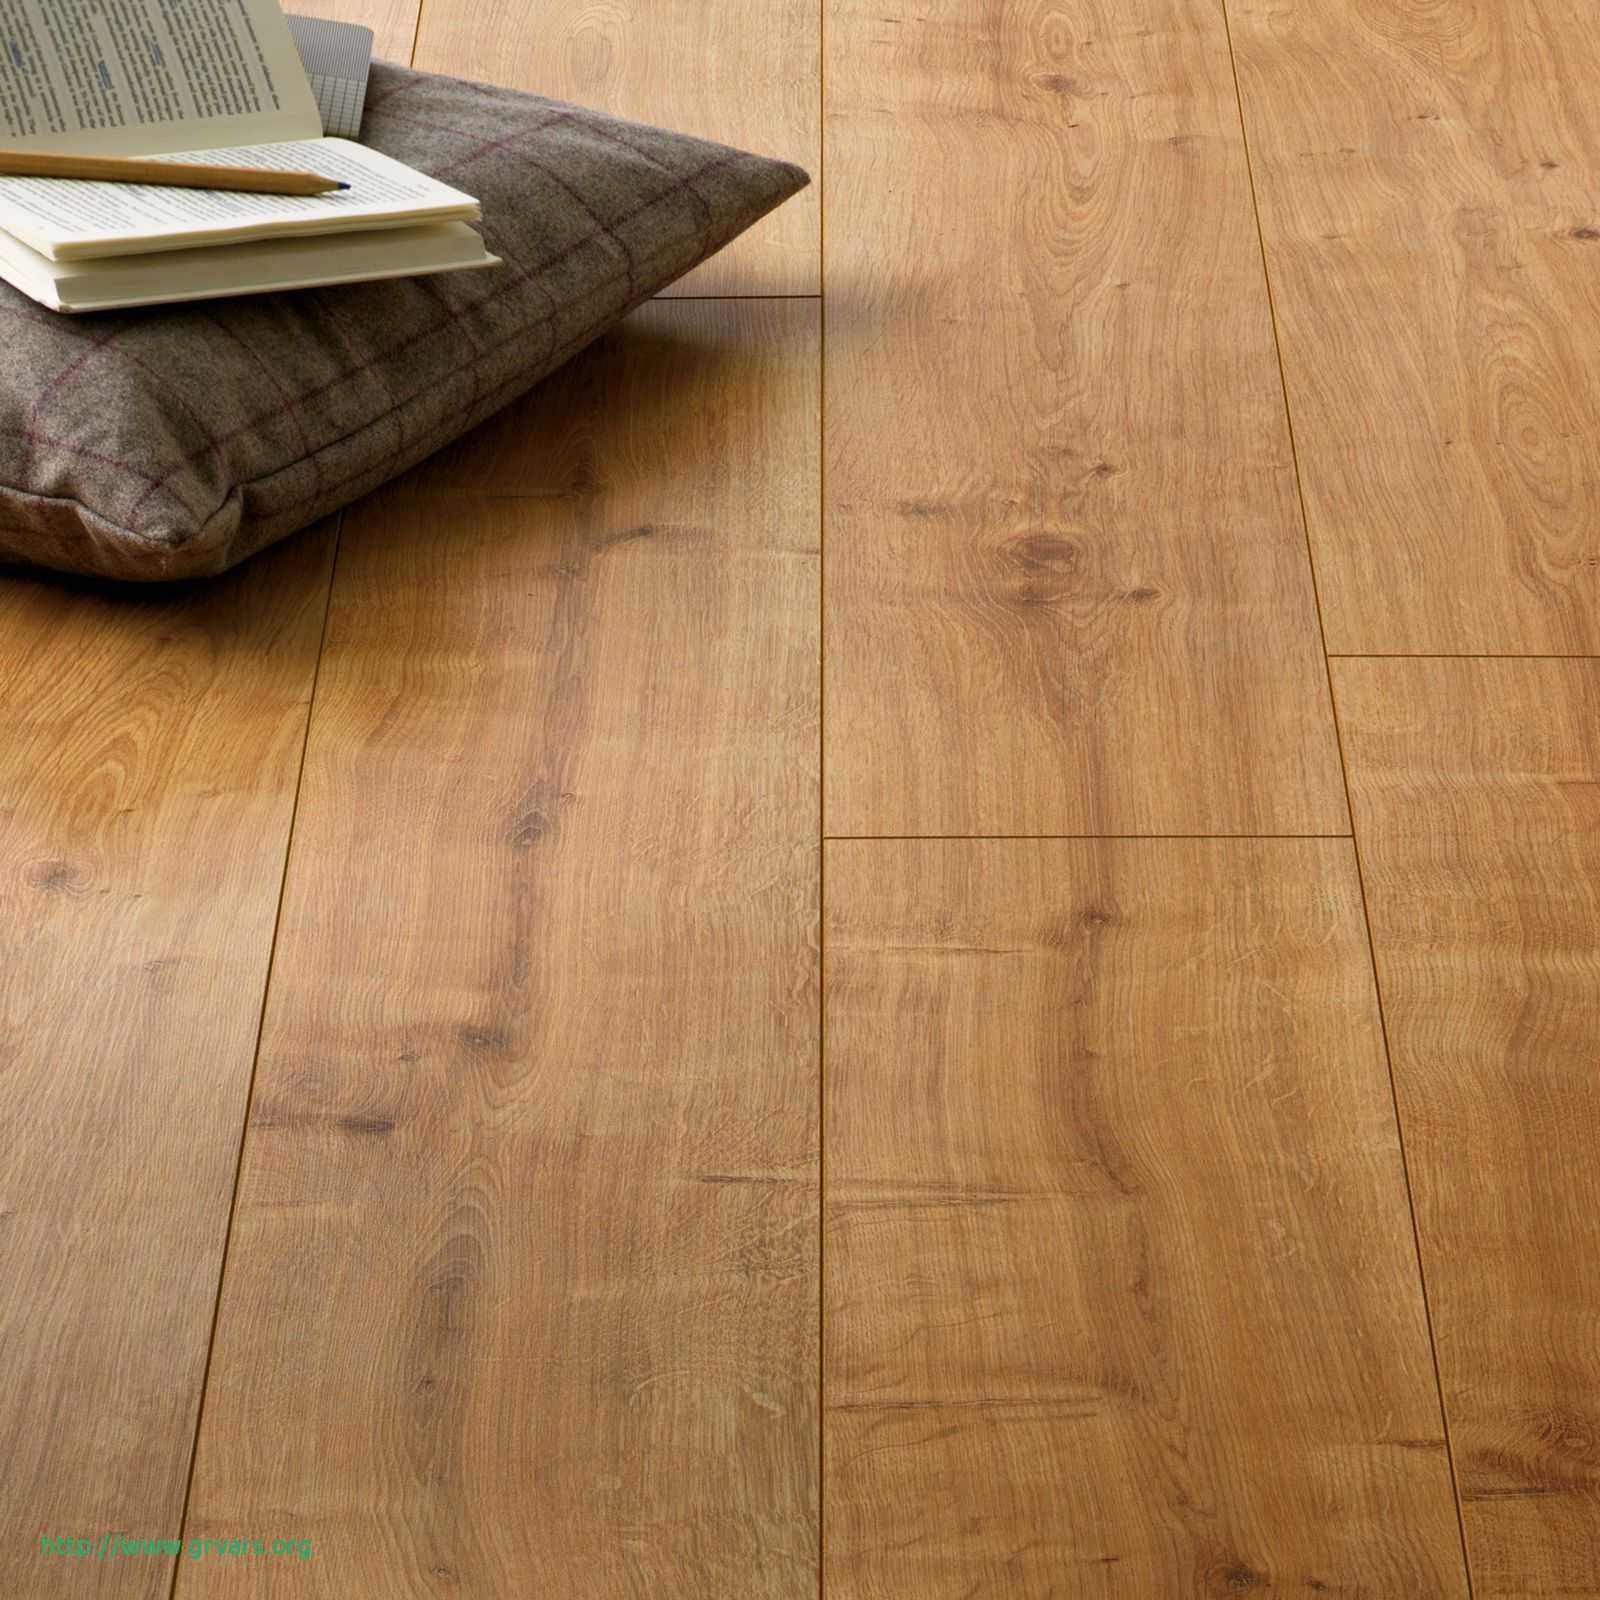 zep hardwood and laminate floor cleaner lowes of dahuacctvth com page 51 of 90 flooring decoration ideas page 51 in best steam mop for laminate floors